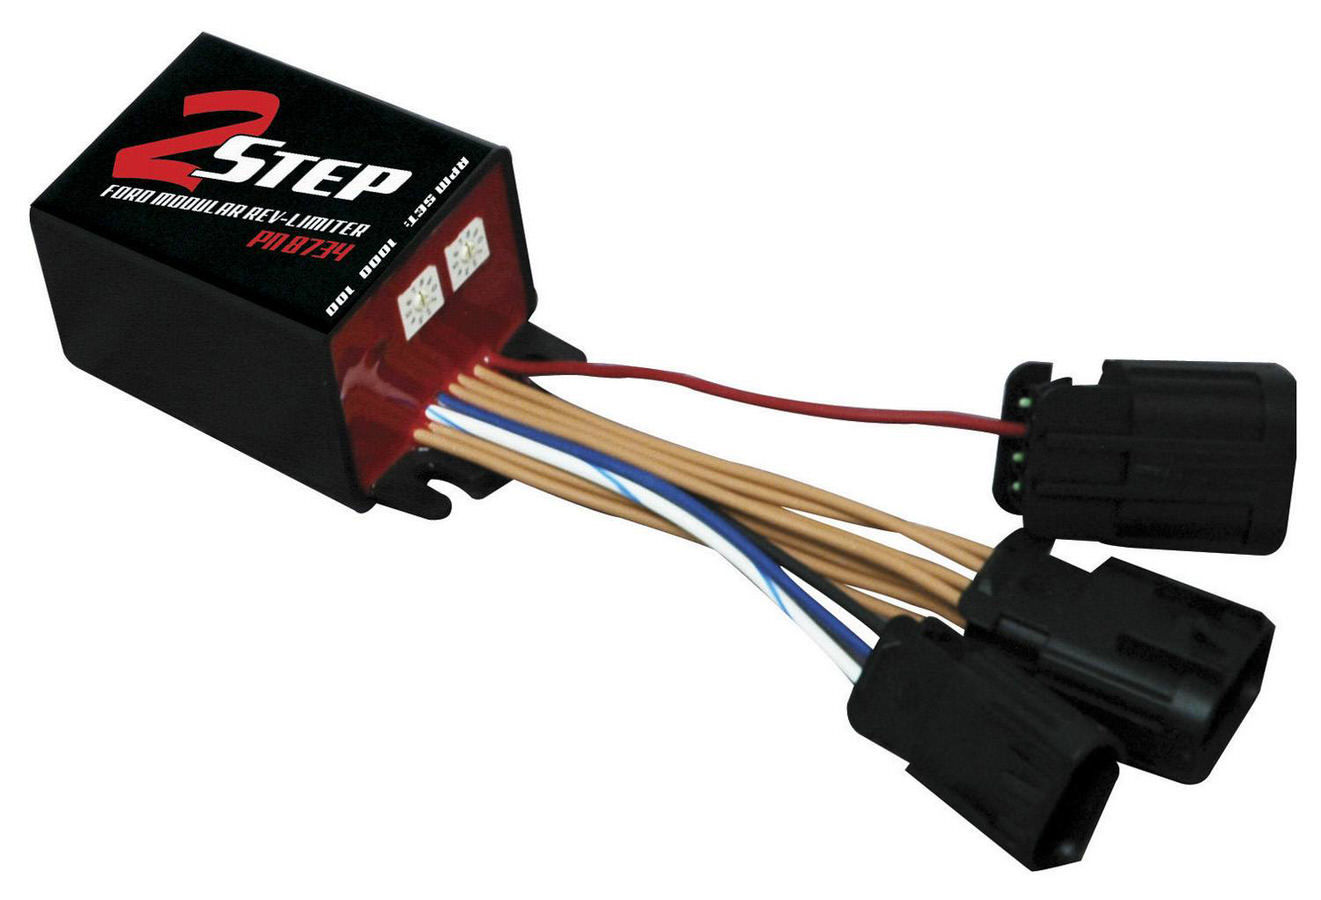 MSD Ignition 8734 Rev Limiter, 2-Step, Launch Control, Adjustable, 1800-9900 RPM, 100 RPM Increments, Factory Connections, Ford Modular, Each